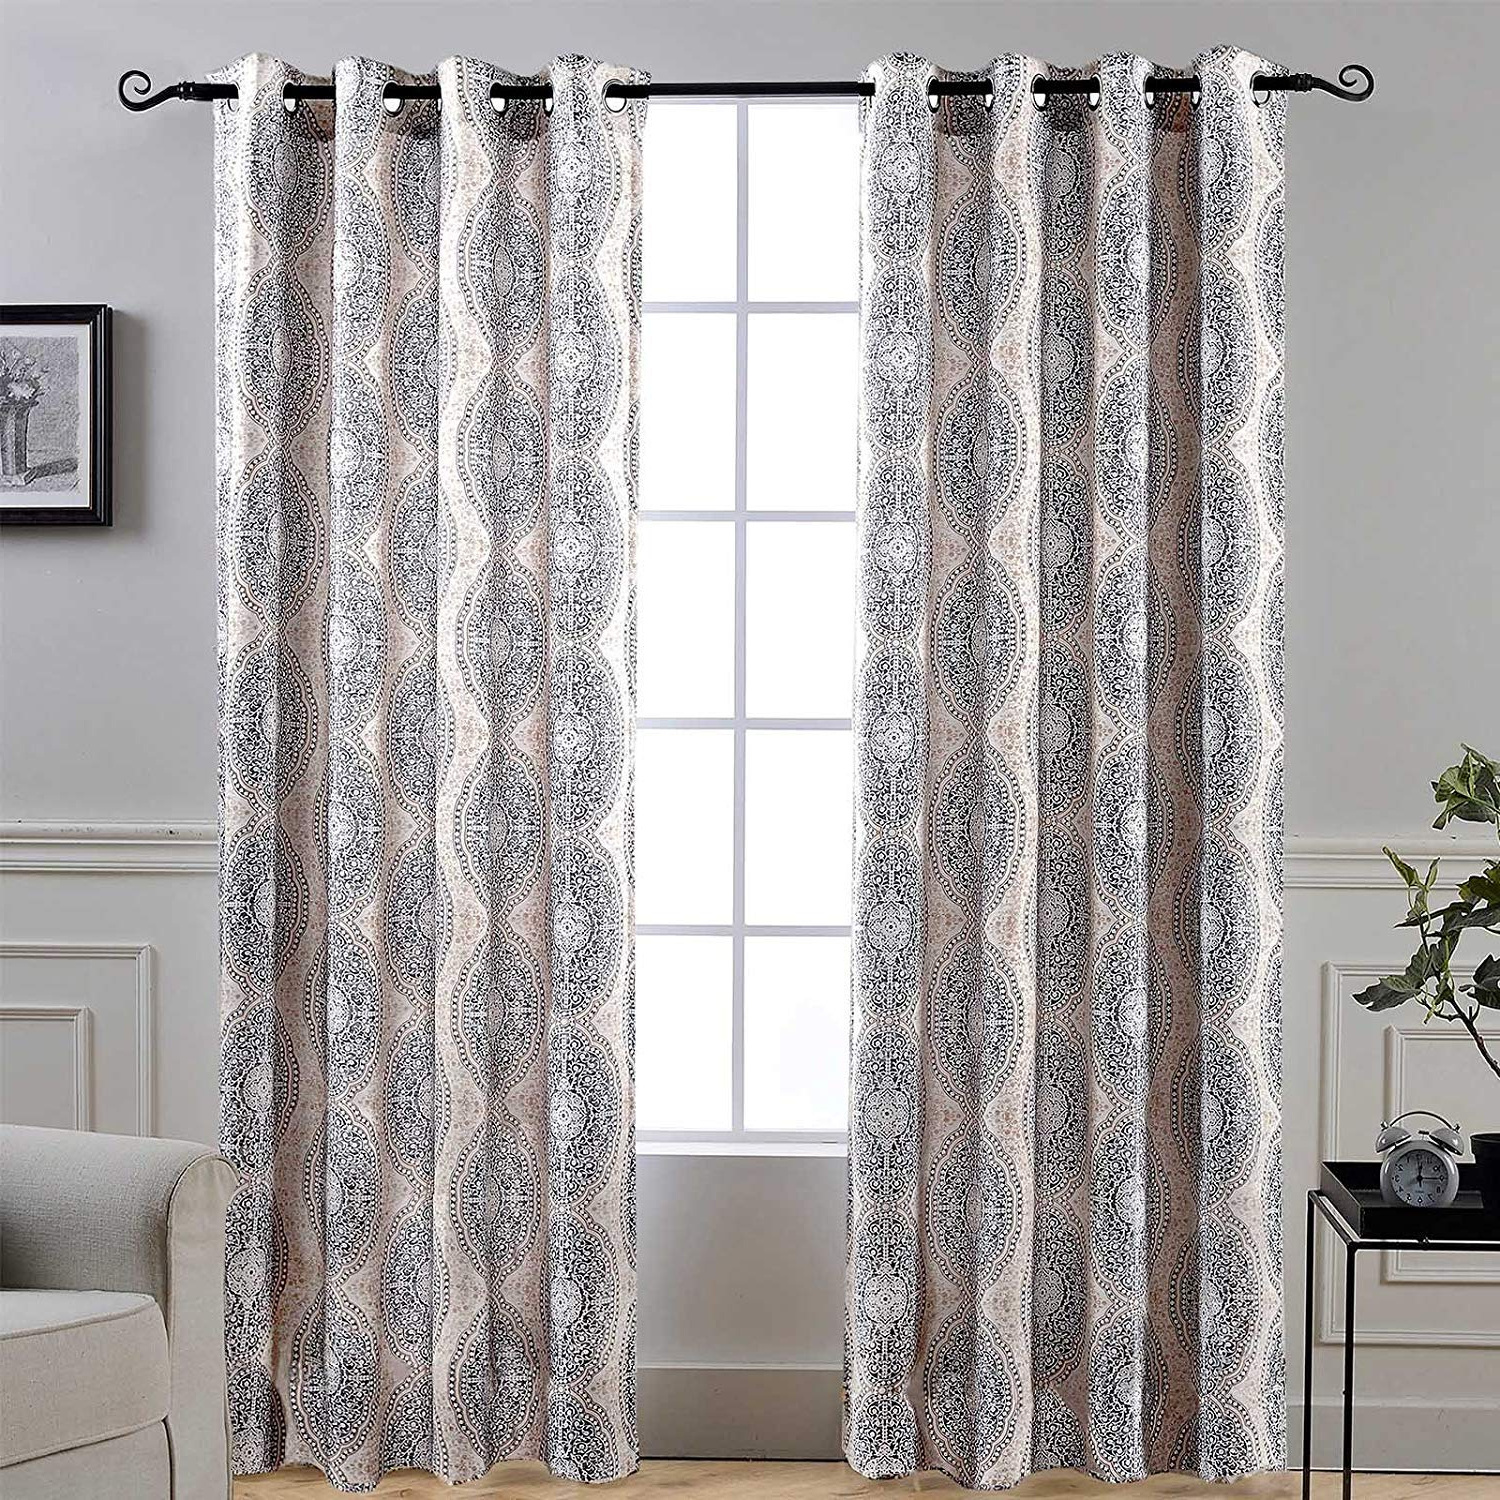 2021 Driftaway Adrianne Thermal And Room Darkening Grommet Unlined Window Curtains Set Of 2 Panels Each 52 Inch96 Inch Beige And Gray Within Pastel Damask Printed Room Darkening Kitchen Tiers (View 7 of 20)